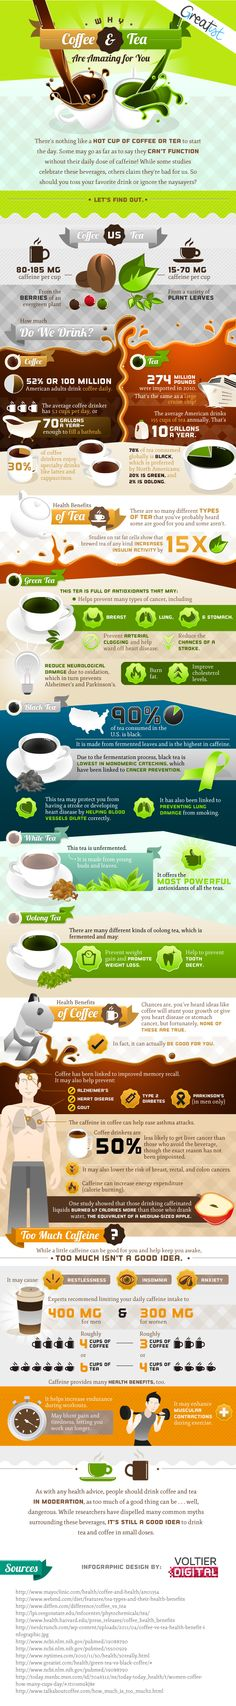 Coffee vs Tea. Check out the health benefits.